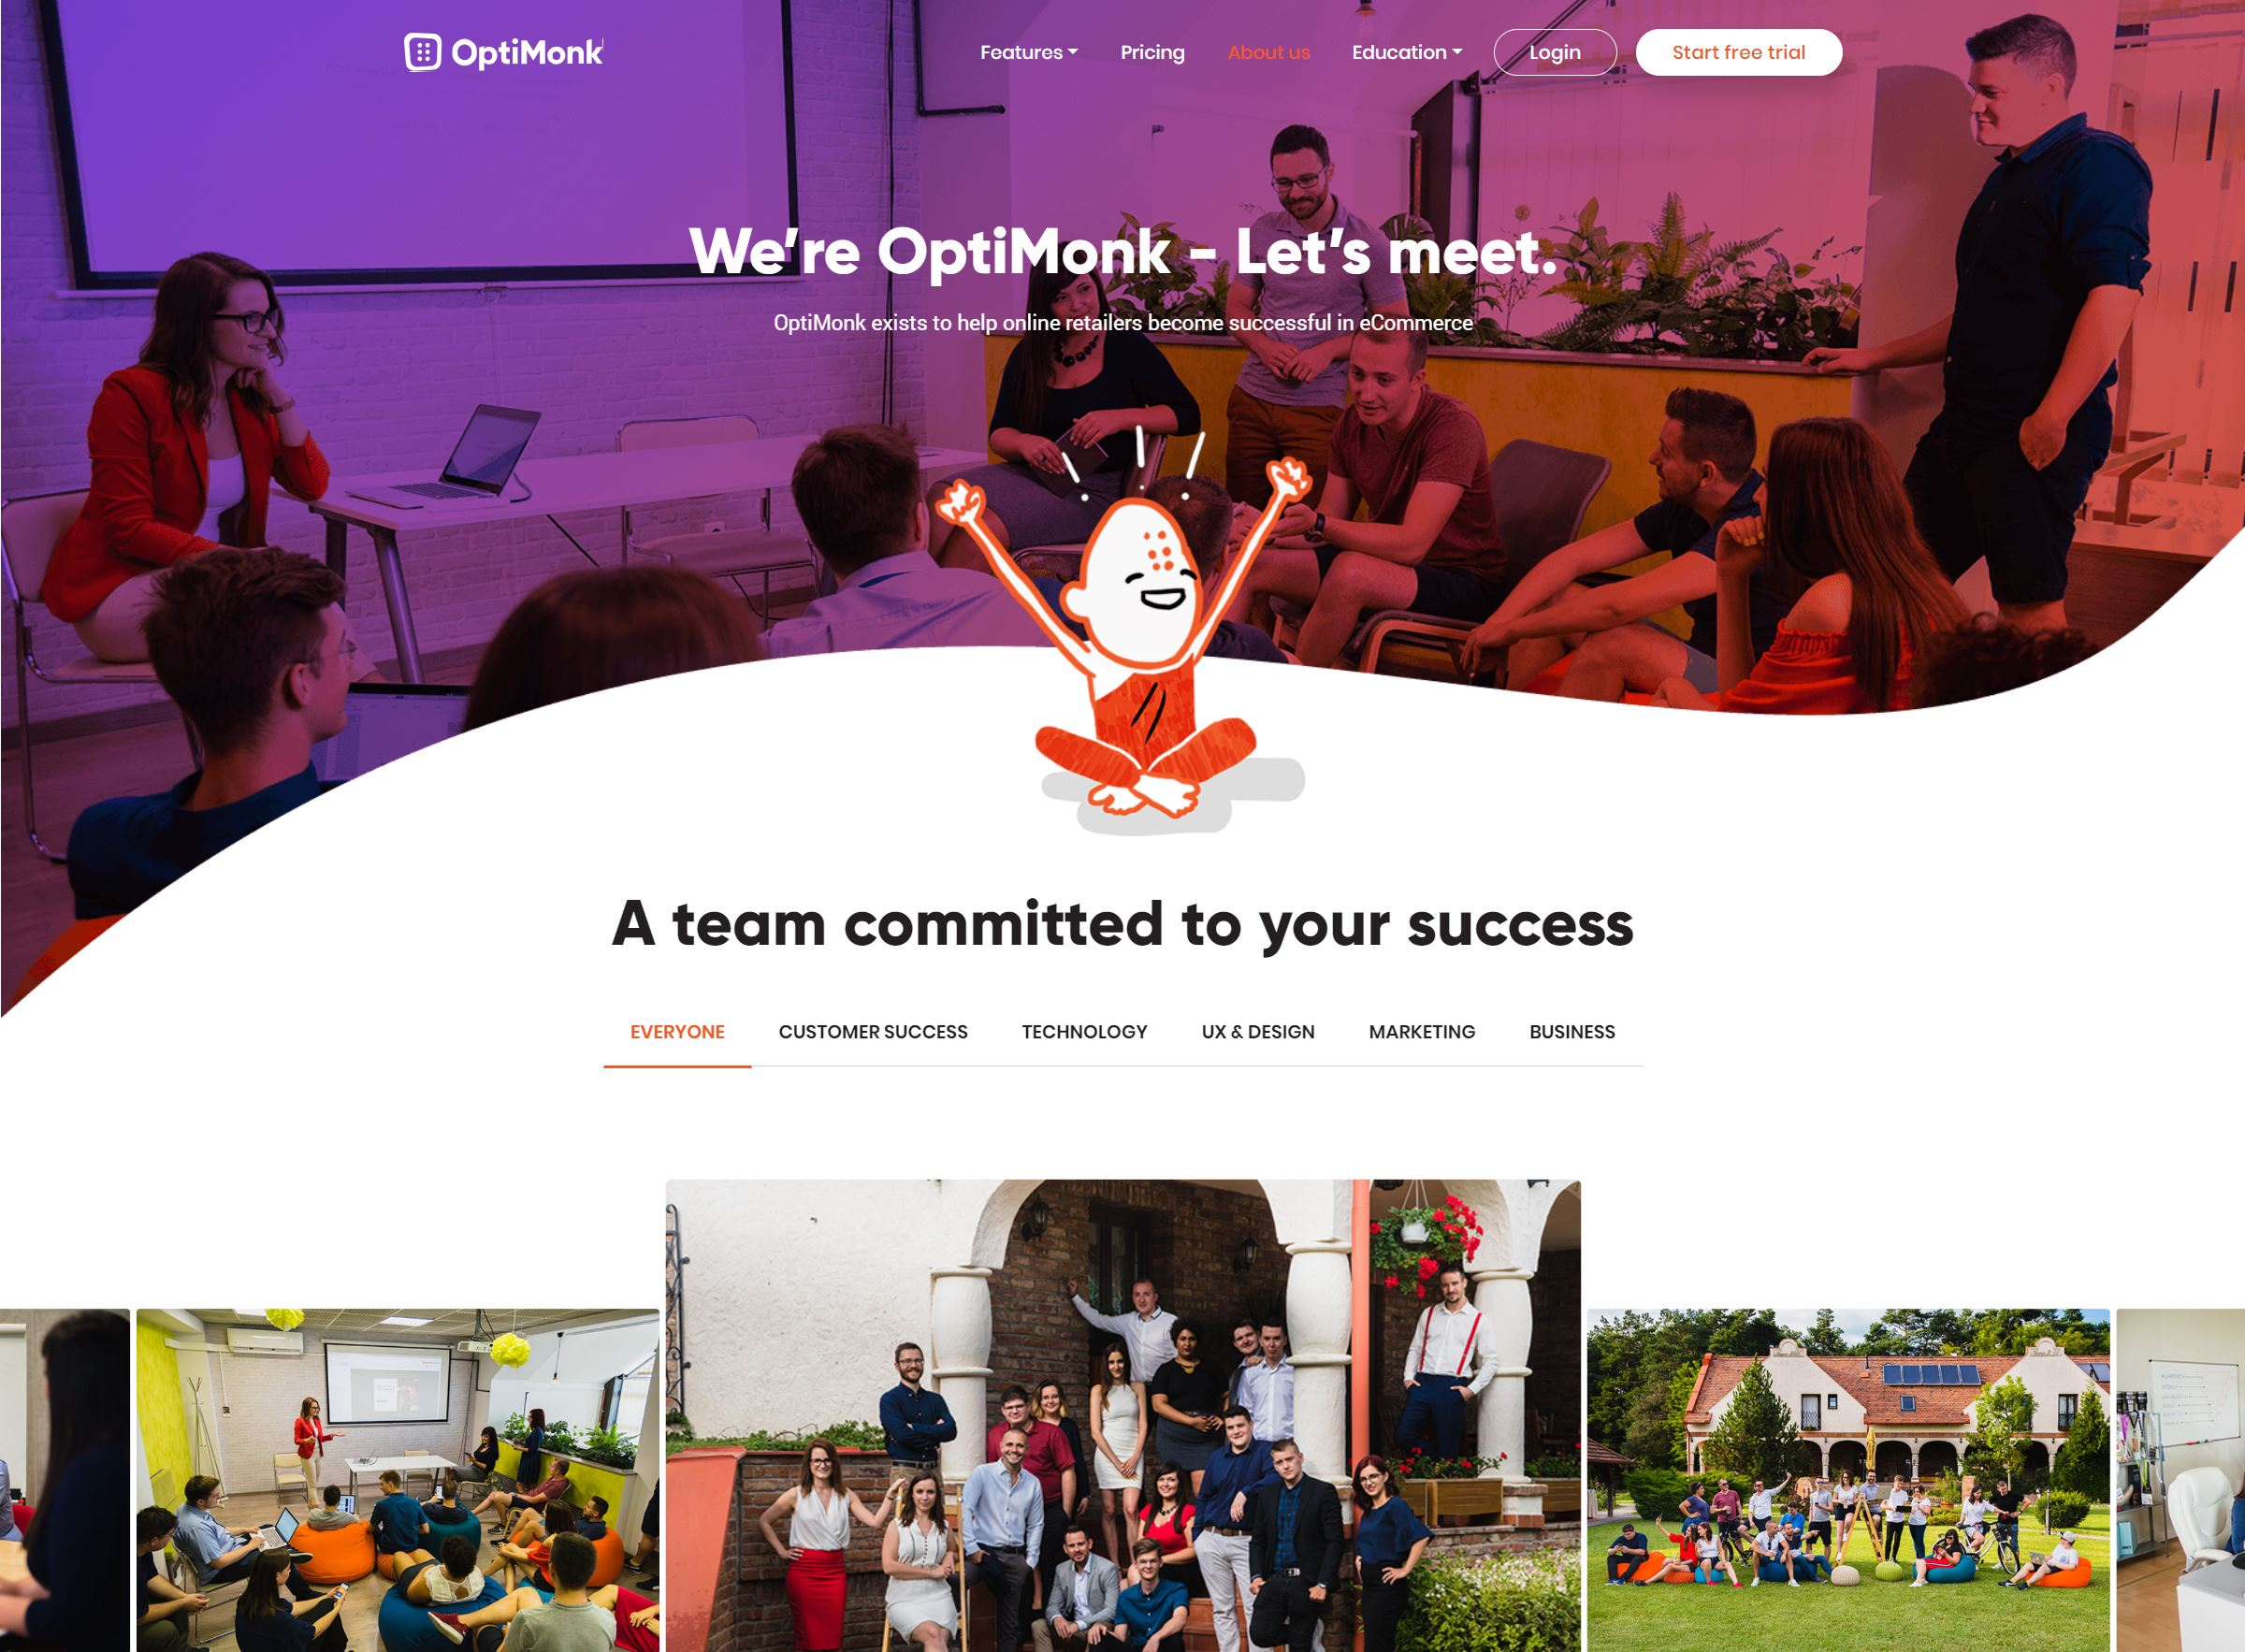 OptiMonk about us page